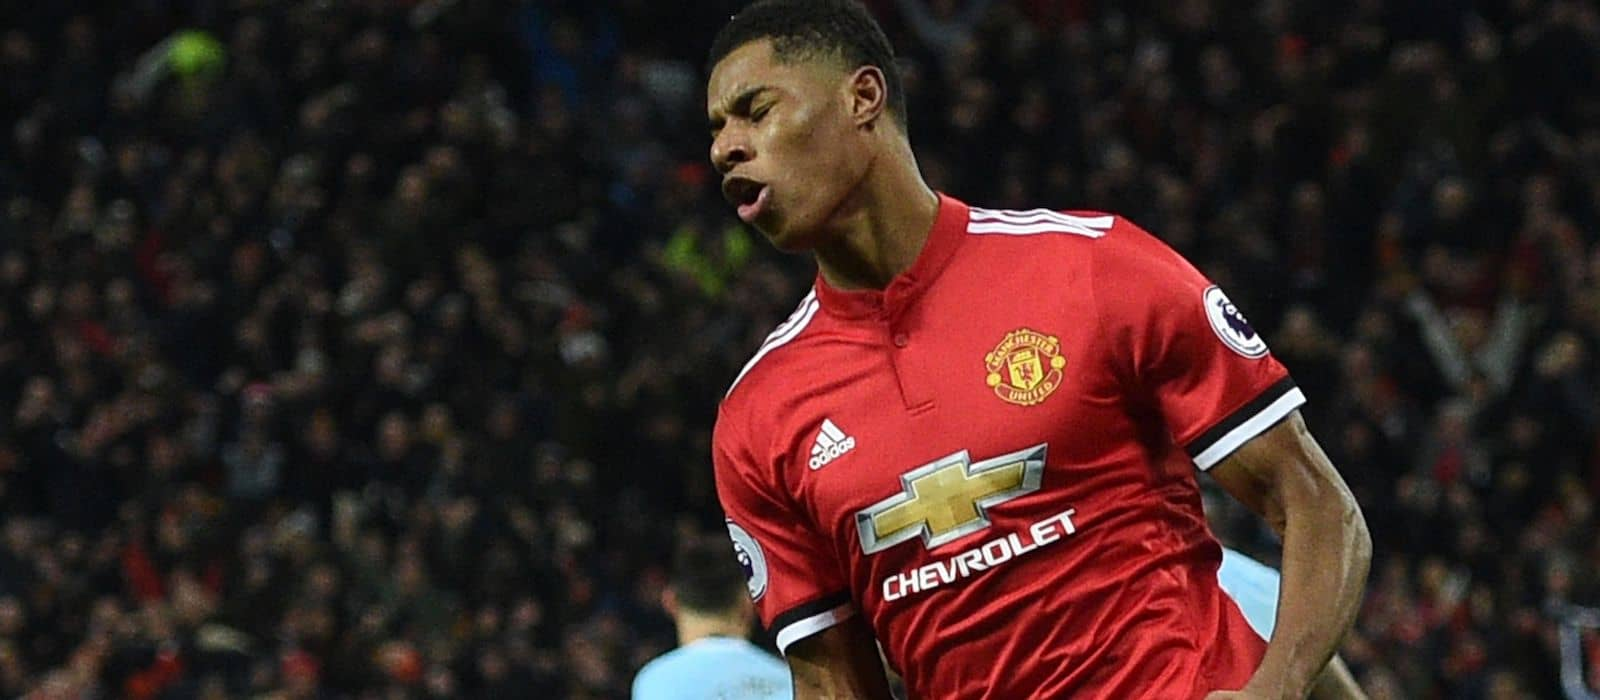 Marcus Rashford to start against Young Boys for Manchester United, reveals Jose Mourinho